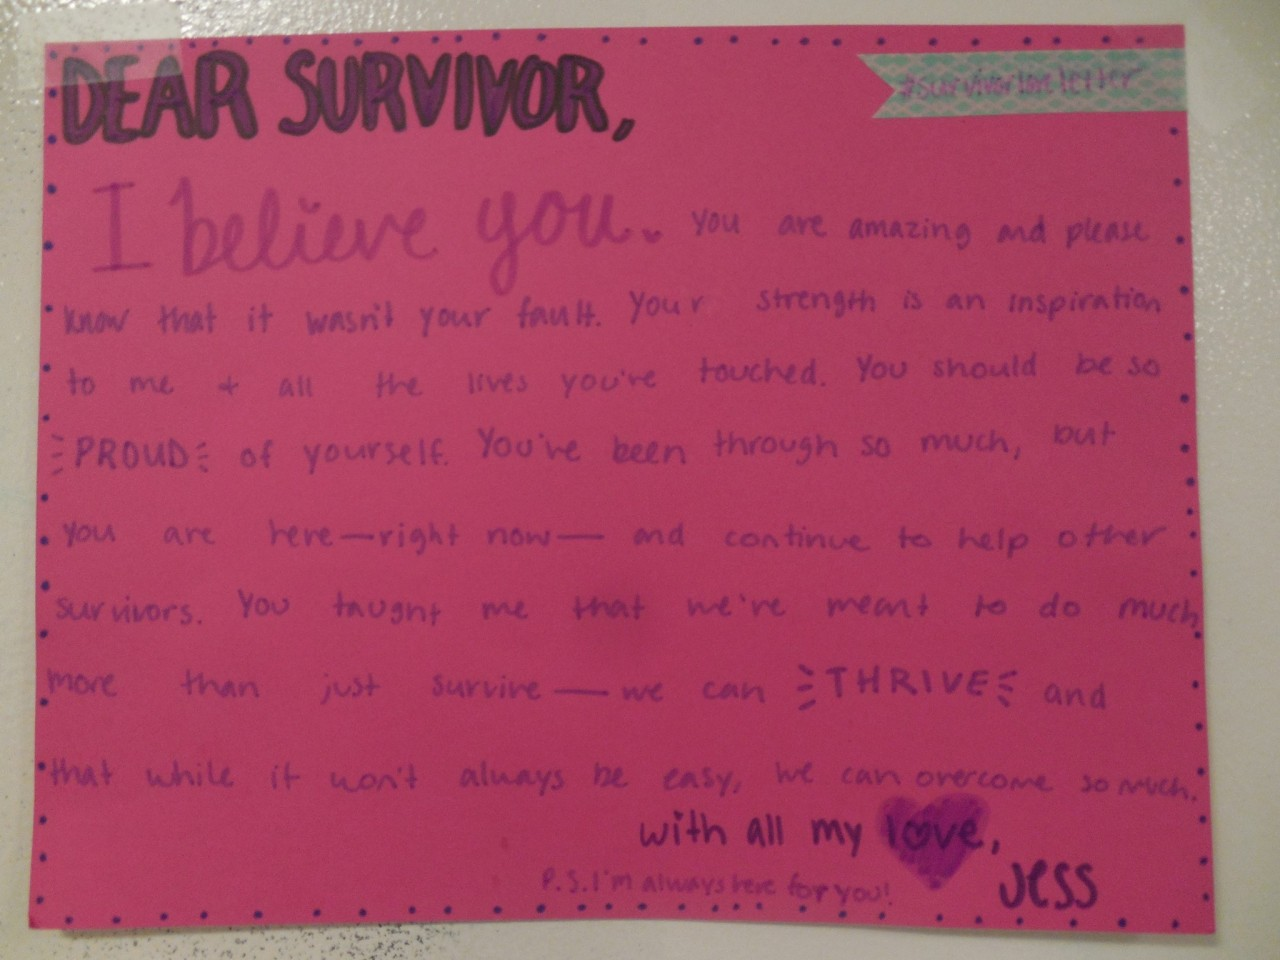 Dear Survivor,  I believe you. You are amazing and please know that it wasn't your fault. Your strength is an inspiration to me & all the lives you've touched. You should be so PROUD of yourself. You've been through so much, but you are here– right now– and continue to help other survivors. You taught me that we're meant to do much more than just survive– we can THRIVE and that while it wont always be easy, we can overcome so much.  With all my love, Jess  P.S. I'm always here for you!